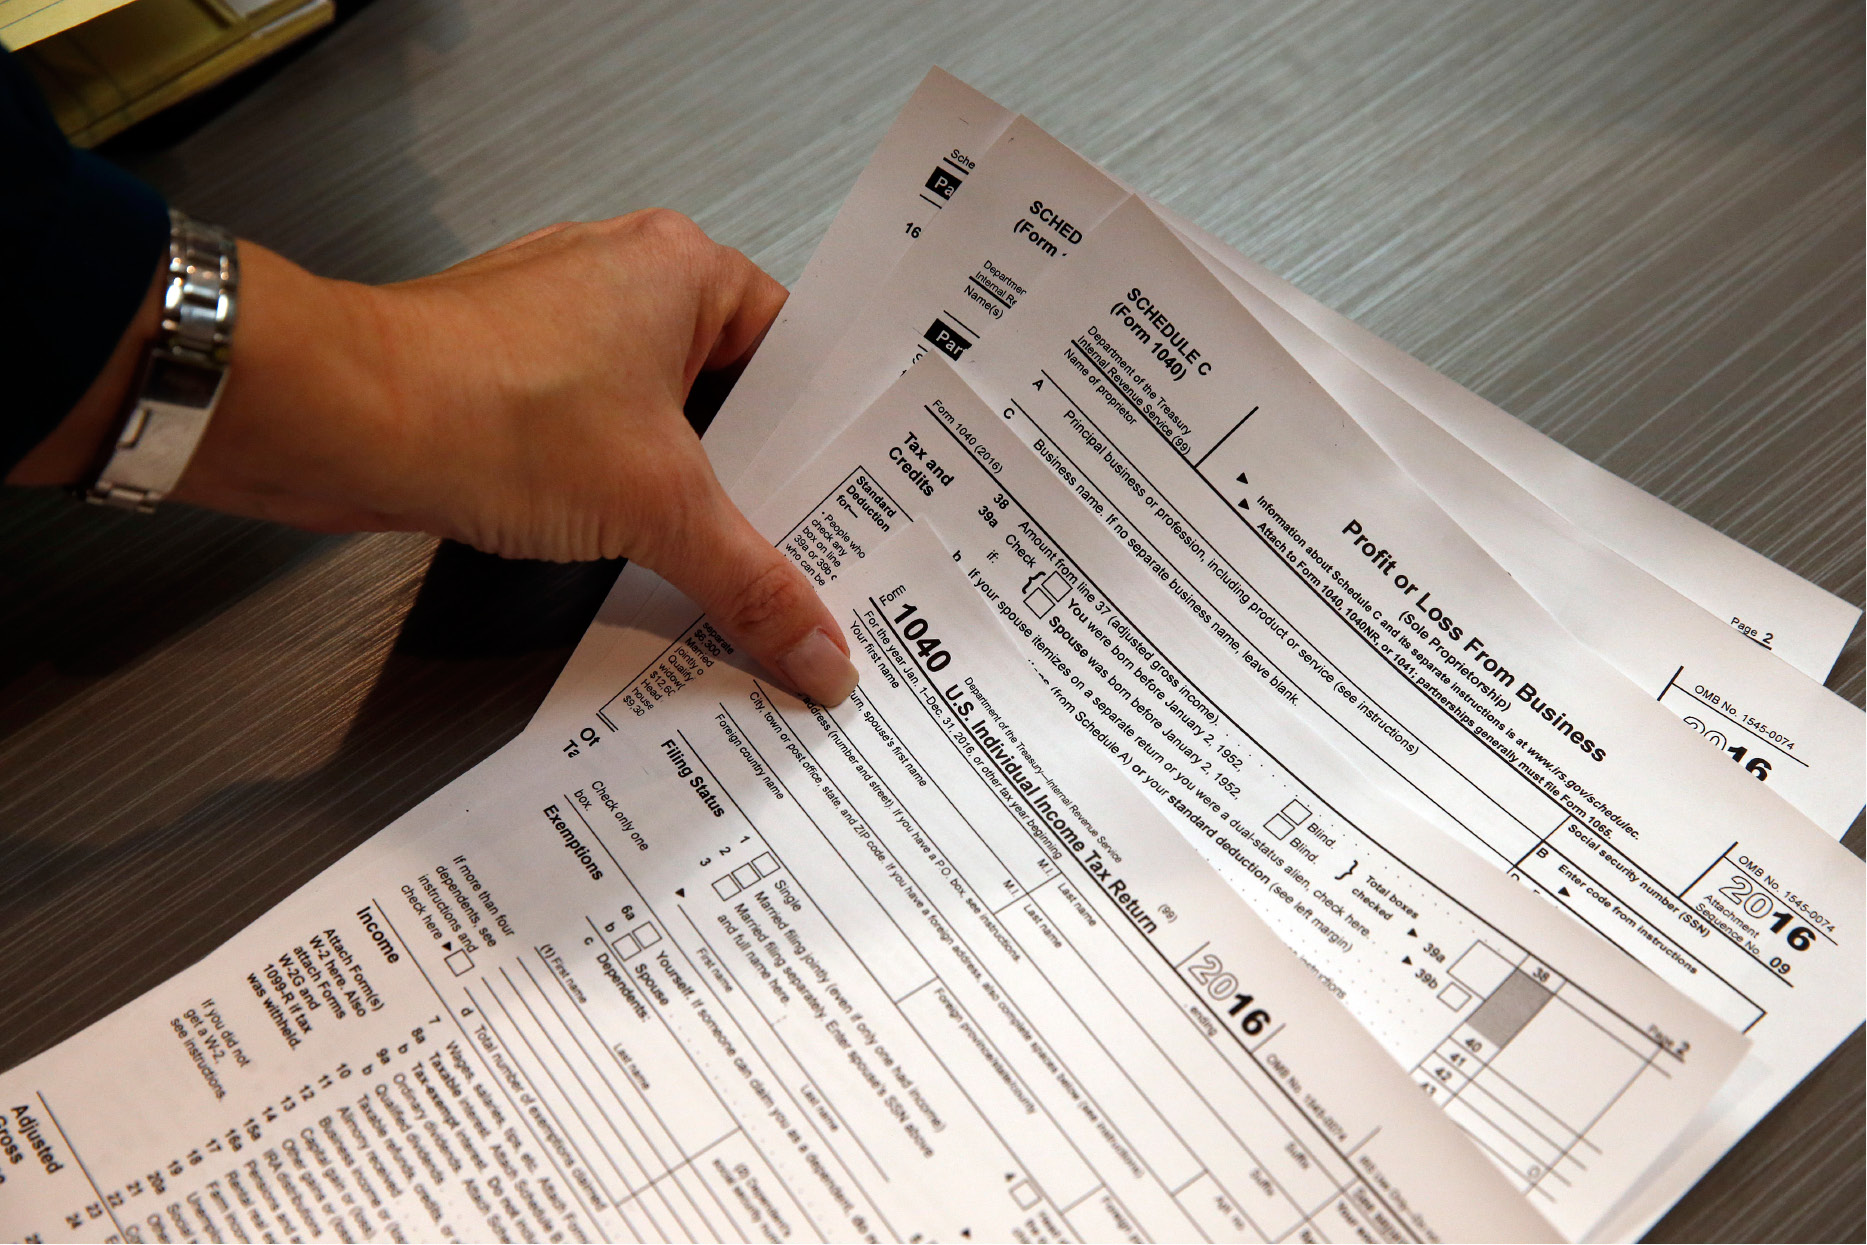 Several Income Tax Preparation Programs Began This Week Offering Help To Seniors